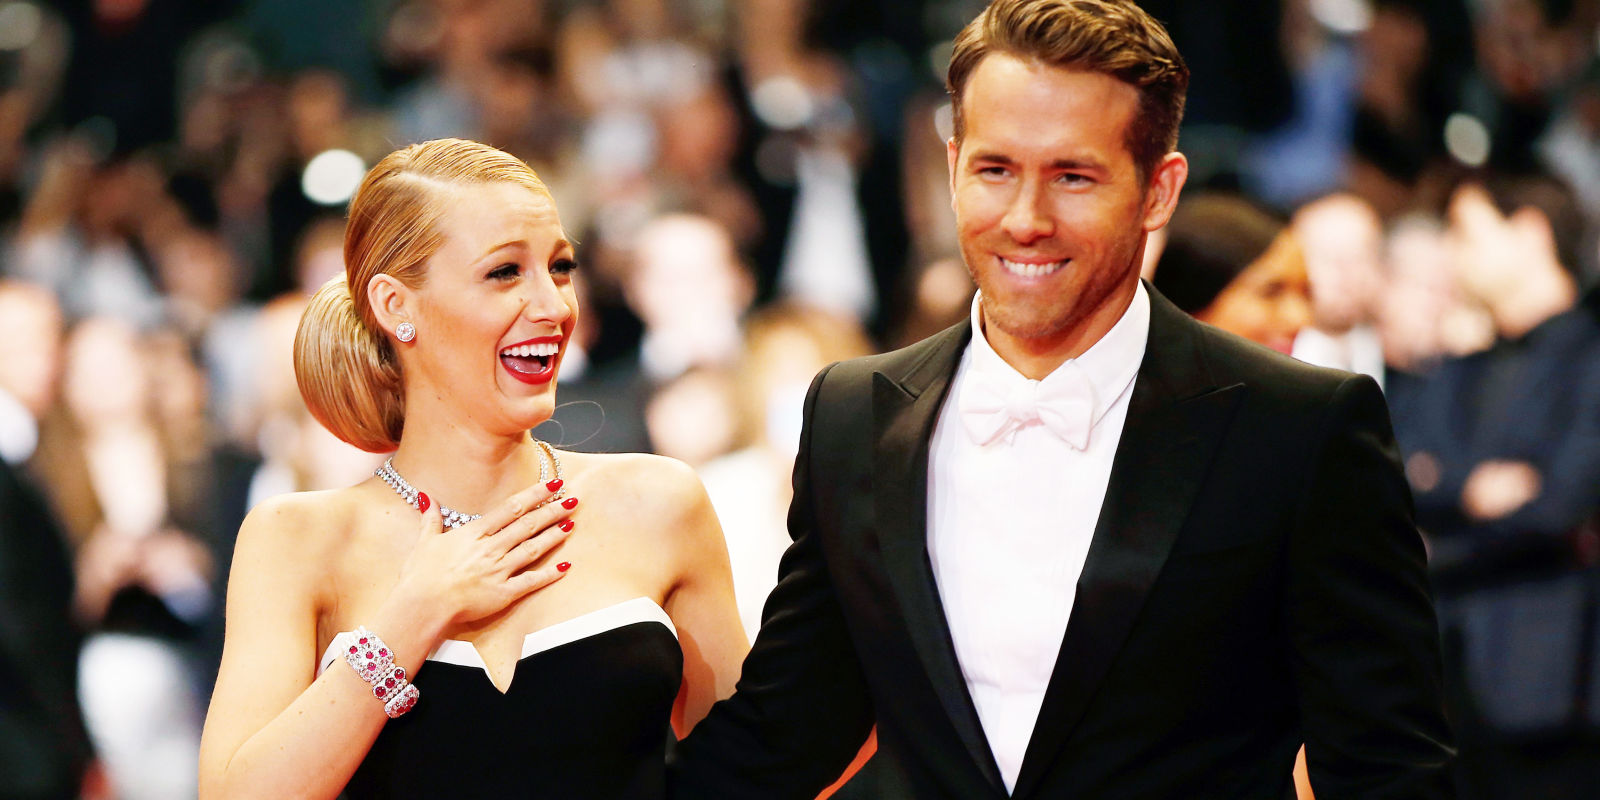 What It's Like to Be a Dinner Guest at Blake Lively and Ryan Reynolds' Place